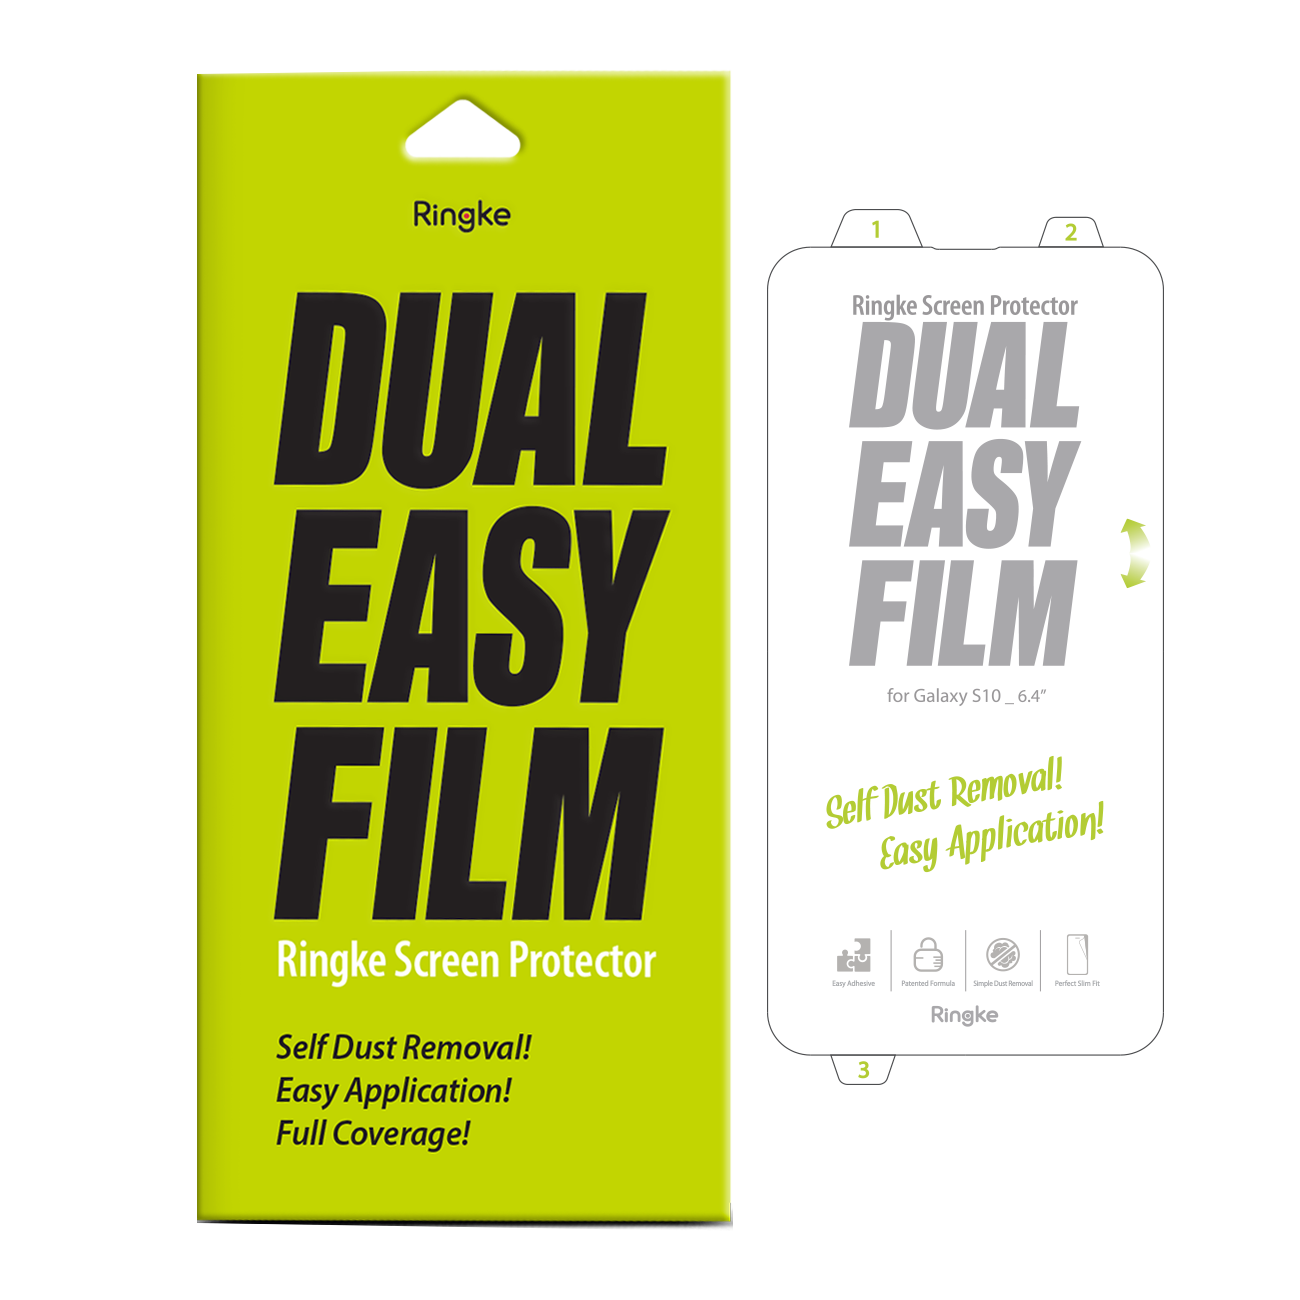 NEW Ringke DUAL EASY SCREEN PROTECTOR